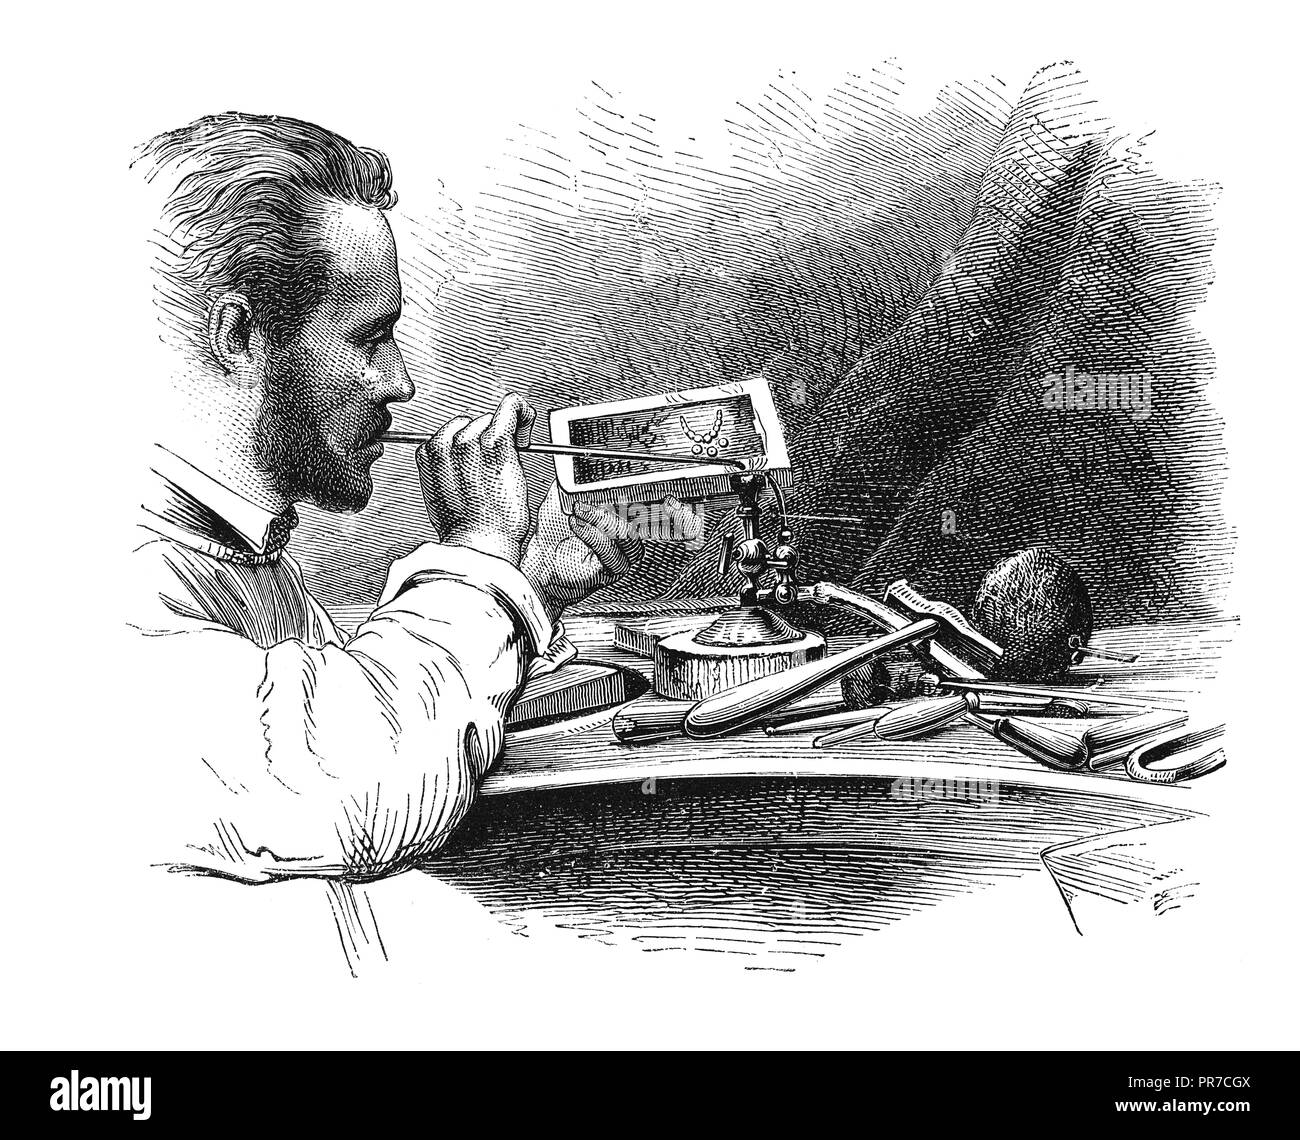 19th century illustration of soldering with the blowpipe - frequent operation in jewel making. Published in 'The Practical Magazine, an Illustrated Cy - Stock Image